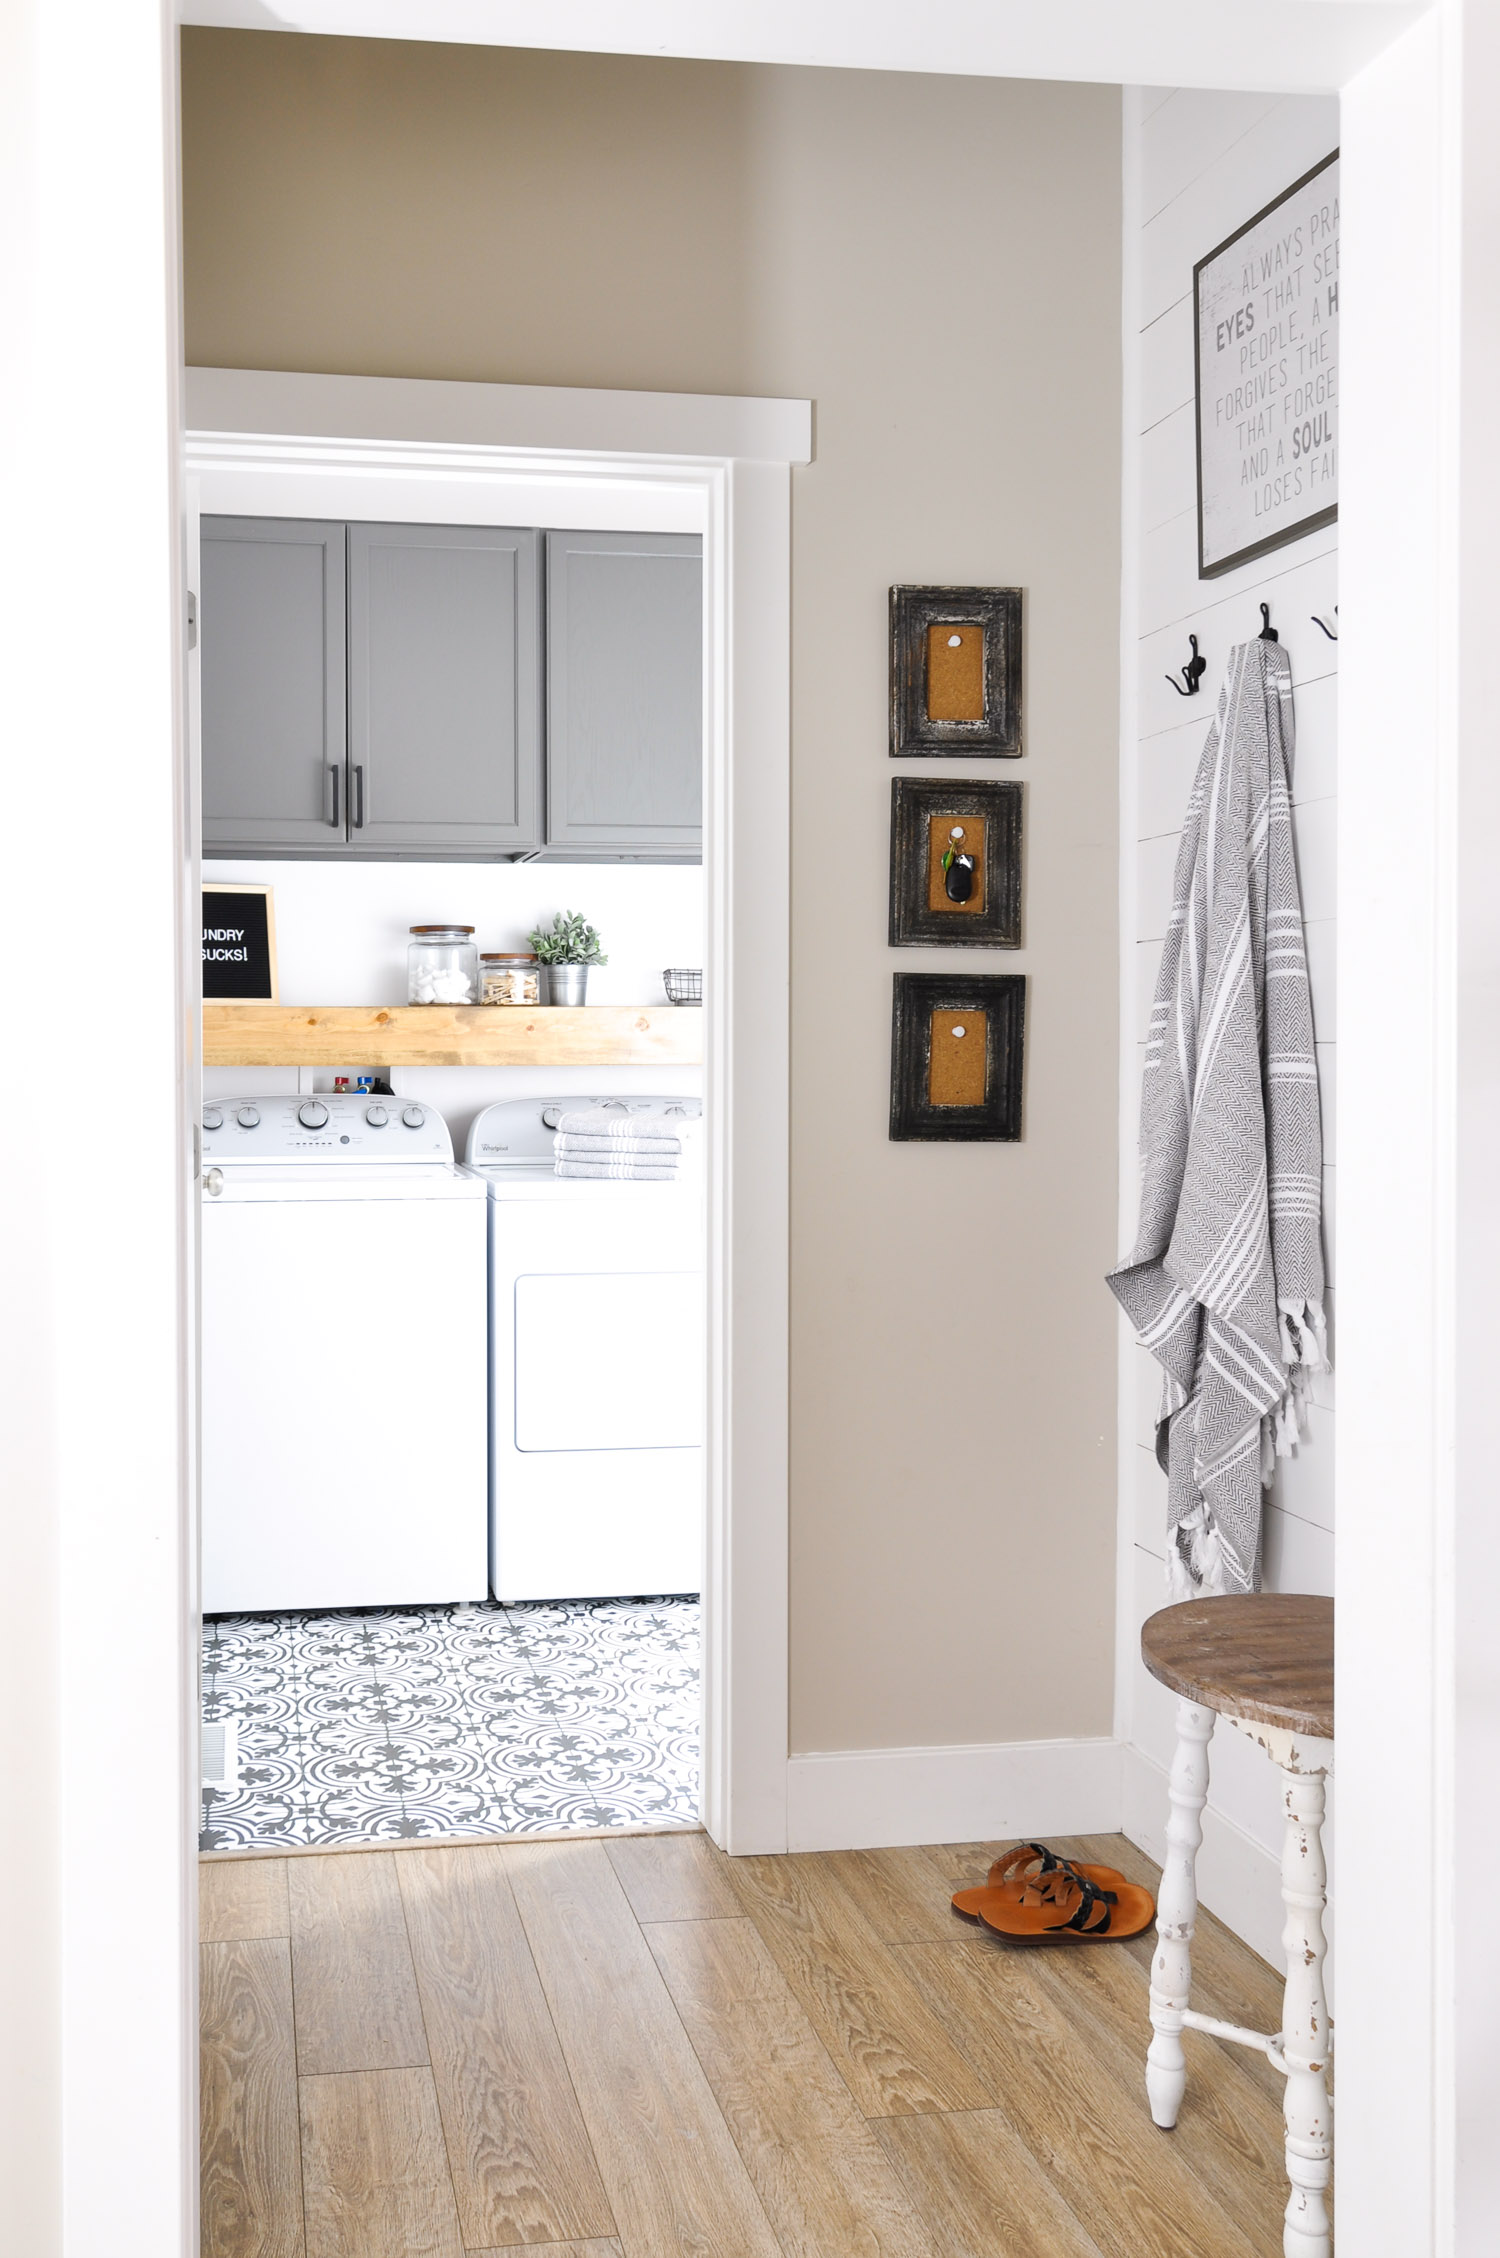 Farmhouse Laundry Room Floor Painted Vinyl Linoleum Floor Makeover Ideas Fox Hollow